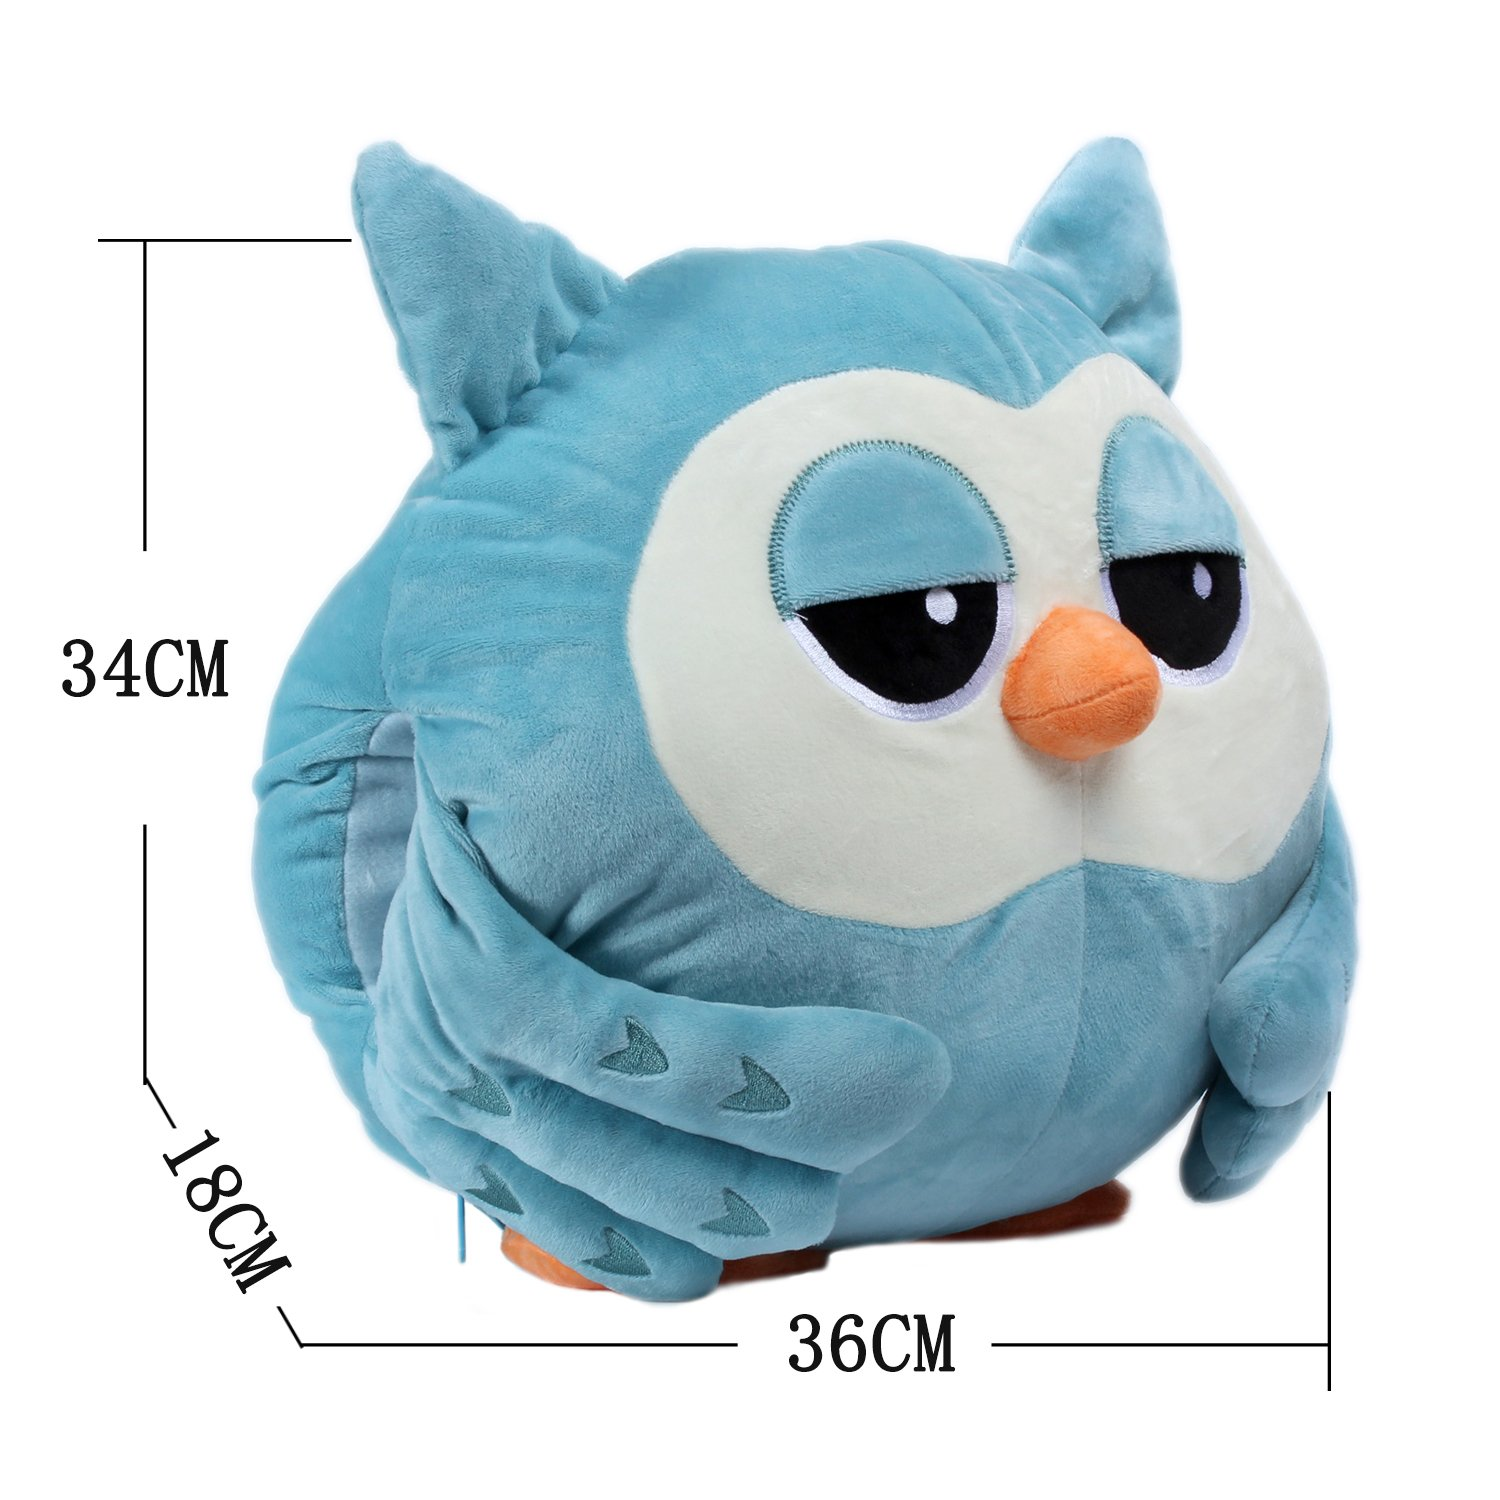 Alpacasso 3 In 1 Cute Cartoon Plush Stuffed Animal Toys Throw Pillow Blanket Set with Hand Warmer Design. (Blue Owl) by Alpacasso (Image #2)